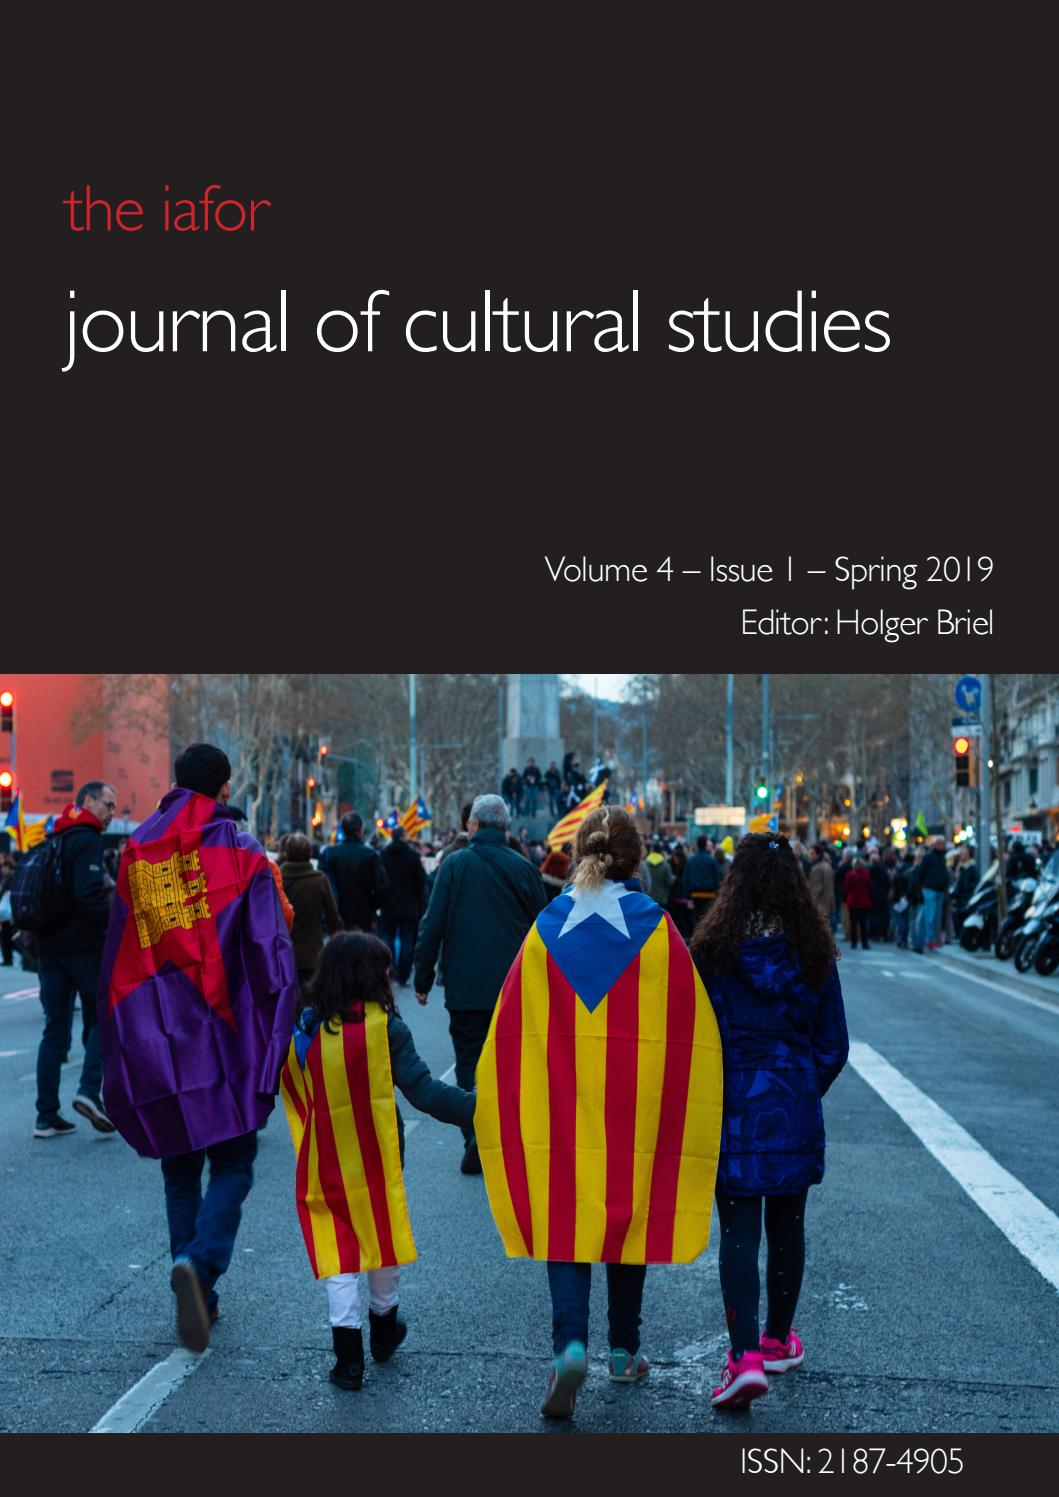 Iafor Journal Of Cultural Studies Volume 4 Issue 1 Spring 2019 By Iafor Issuu